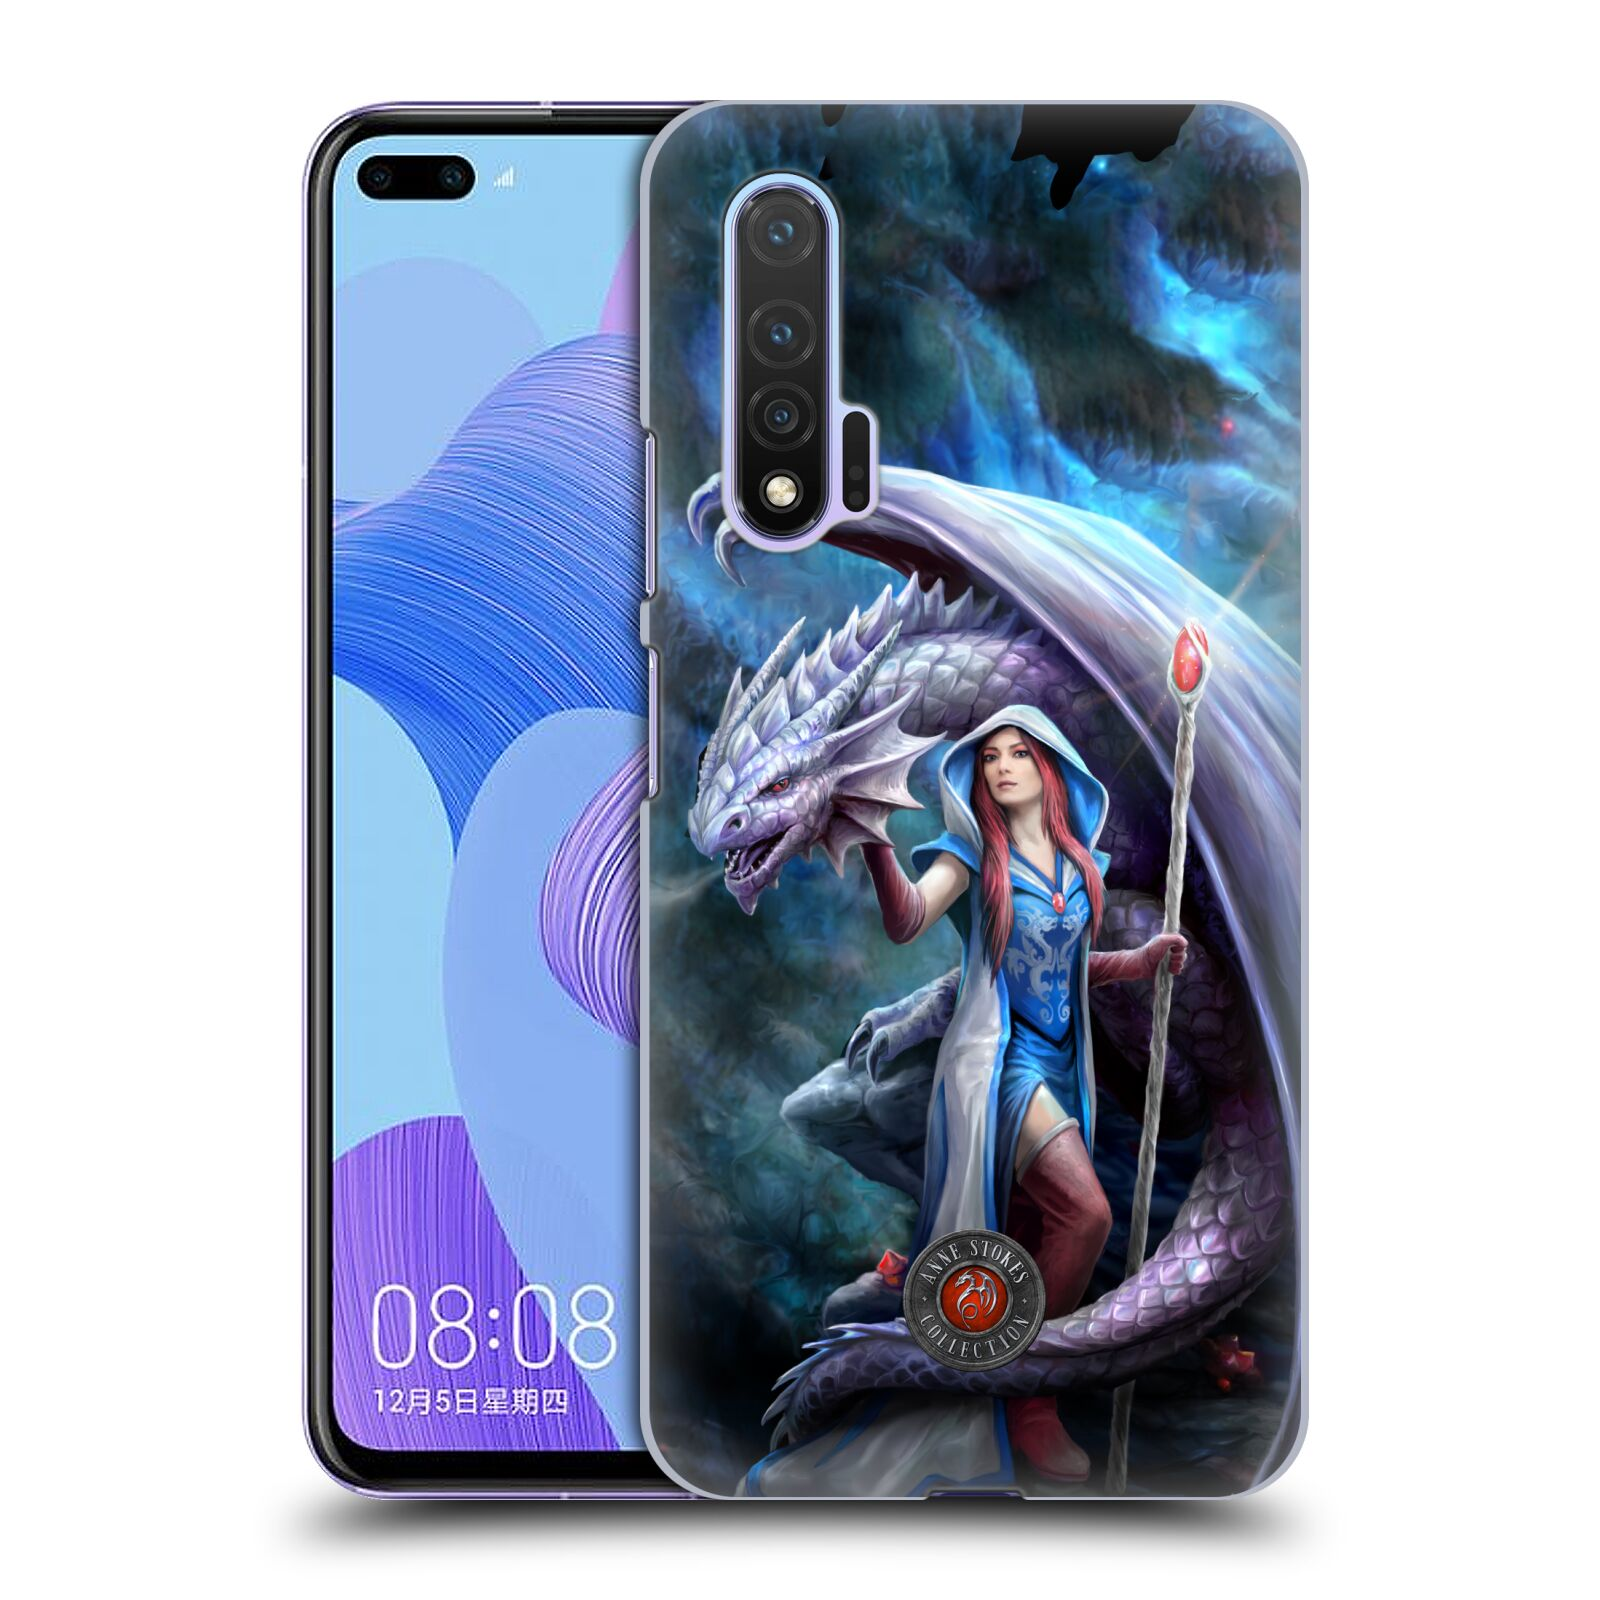 Official Anne Stokes Dragon Friendship 2 Mage Back Case for Huawei Nova 6 5G